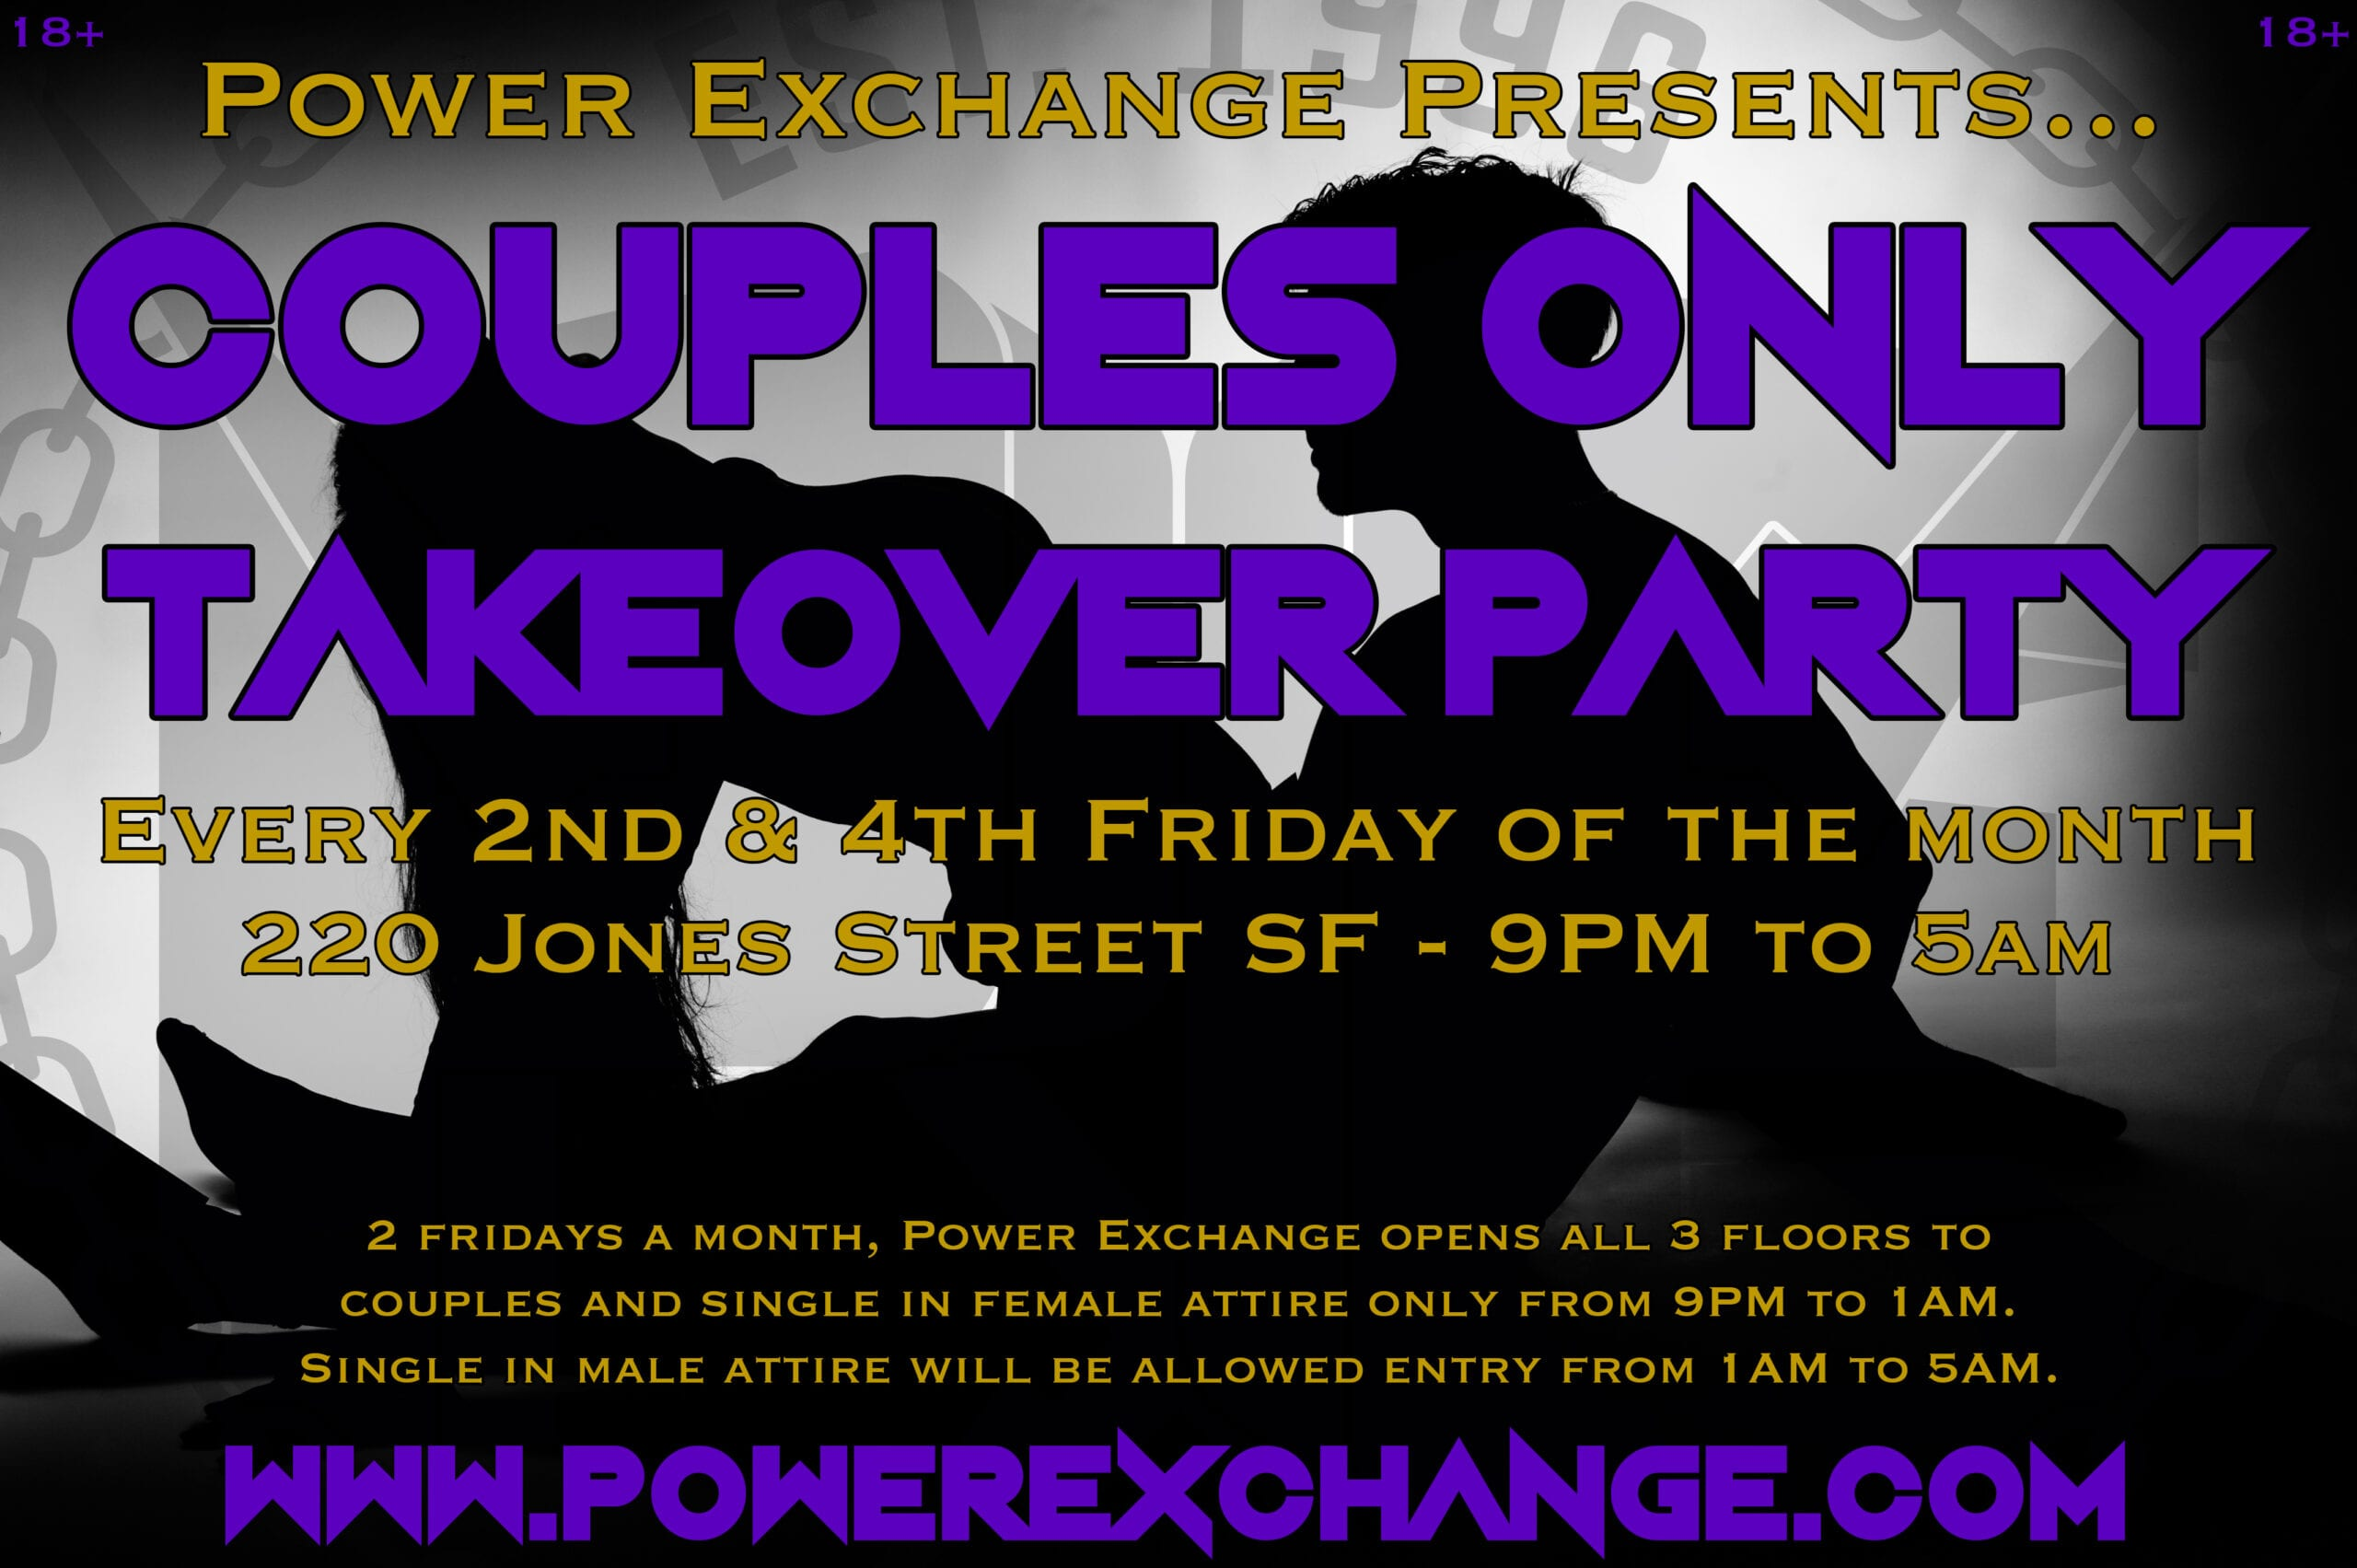 Couples Only Takeover Party is every 2nd and 4th Friday of the month!